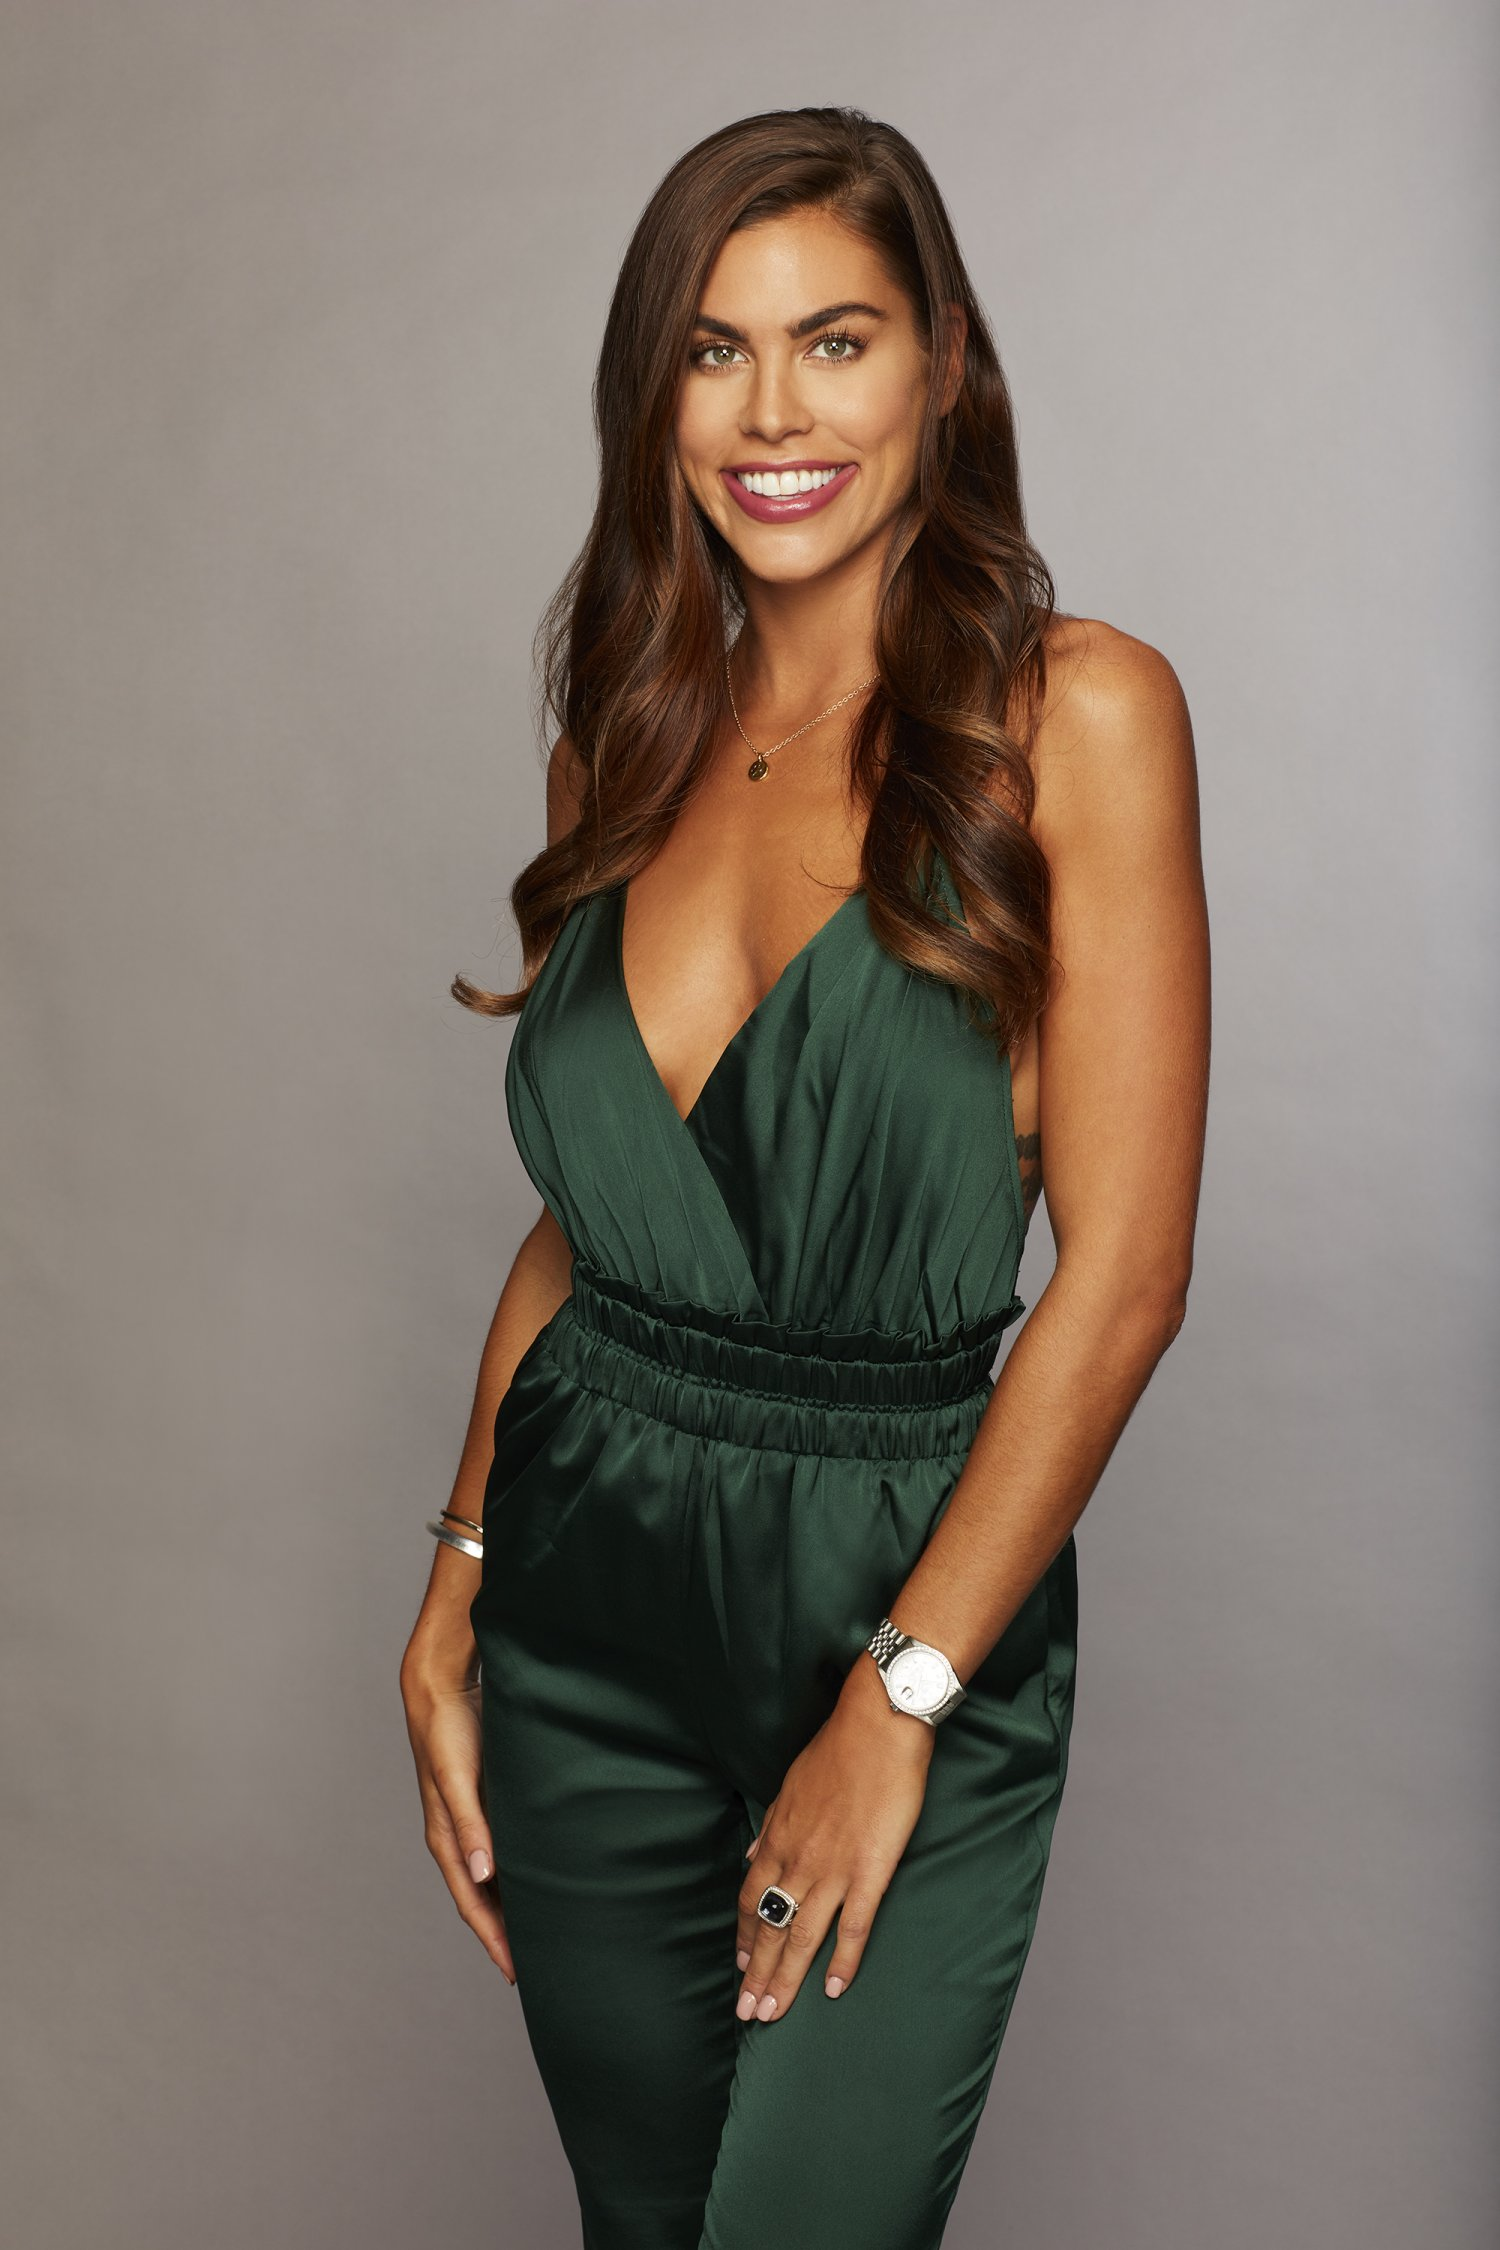 Bachelor 23 - Alex Blumberg - Discussion - *Sleuthing Spoilers* 4839-o